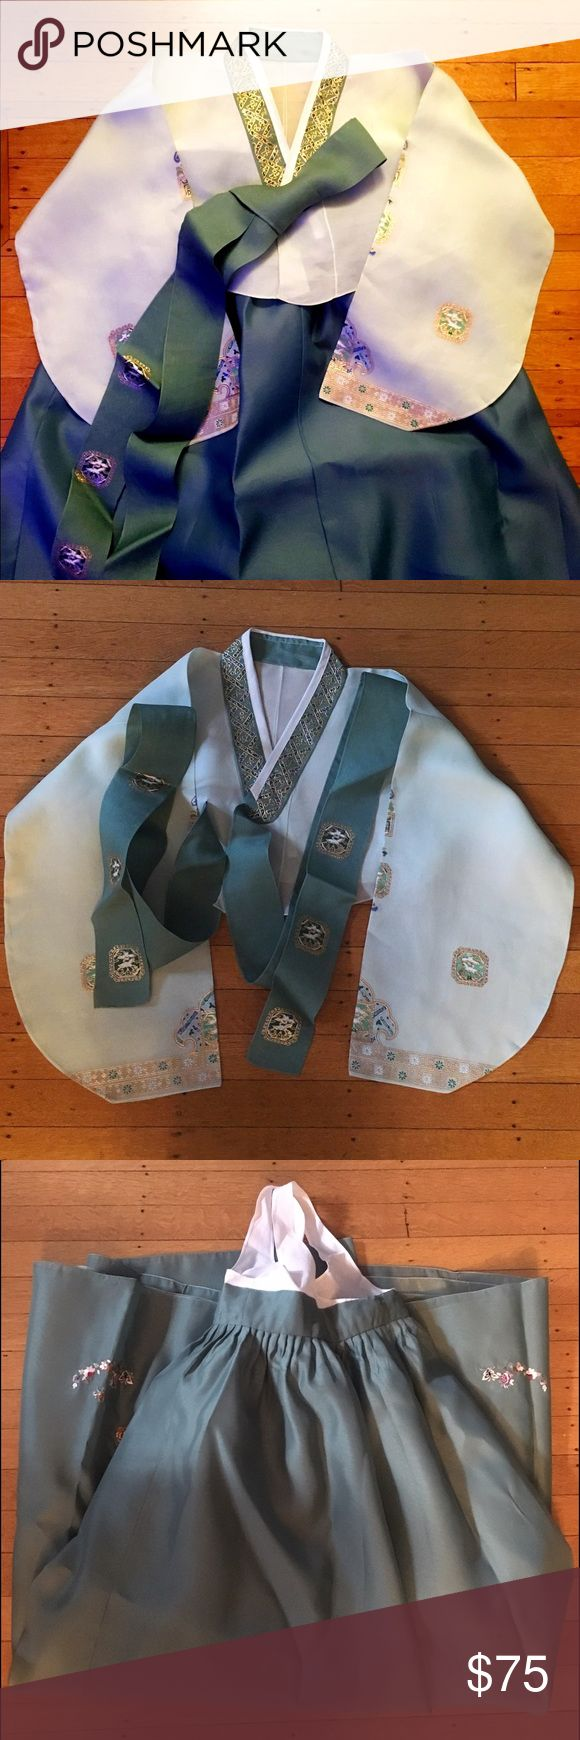 """Authentic Korean Hanbok Gently used hanbok (contains jacket and skirt) has been dry cleaned and ironed. I am 5'6"""" and it is a little too short on me. Ideal for heights 5'4"""" and under. Chest: 37.5"""" max, can be tied tighter, length: 45"""", sleeve (from shoulder to wrist): 24"""". On one of the sleeves the fabric has frayed a little bit but it is not noticeable. Dresses Maxi"""